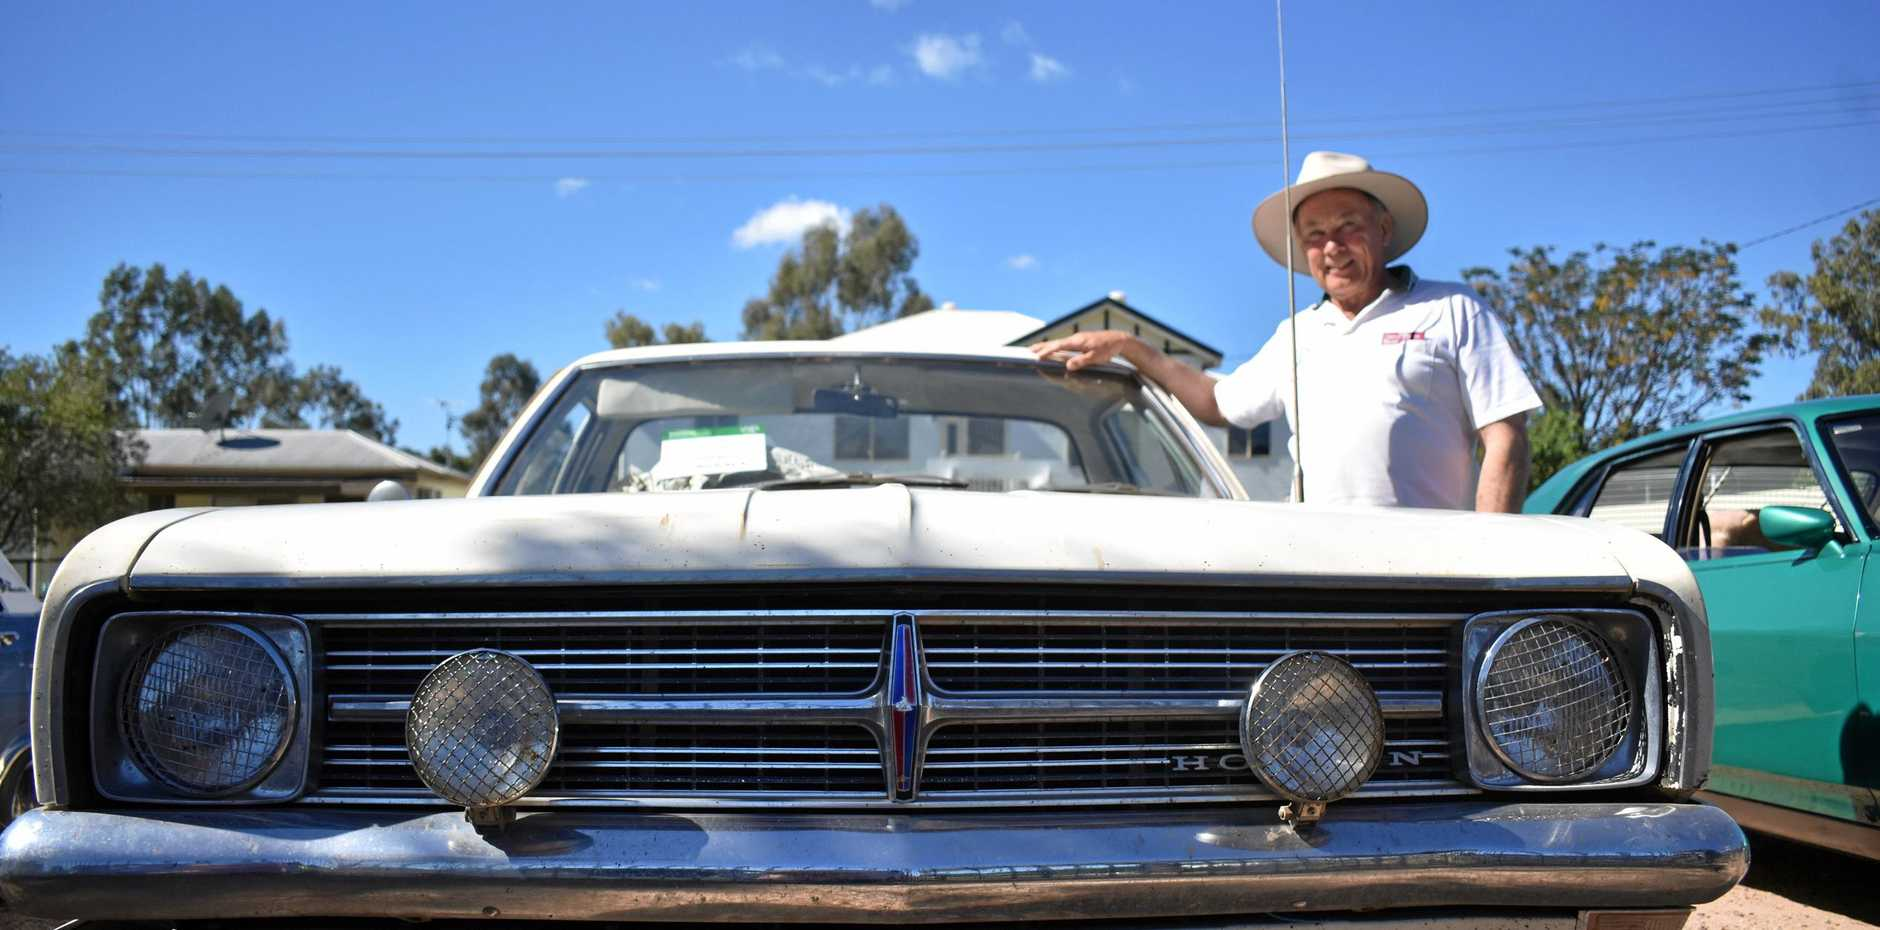 VINTAGE: Stuart Johnson with his 1969 HK Holden Kingswood at the National Motor Heritage Day in Roma.